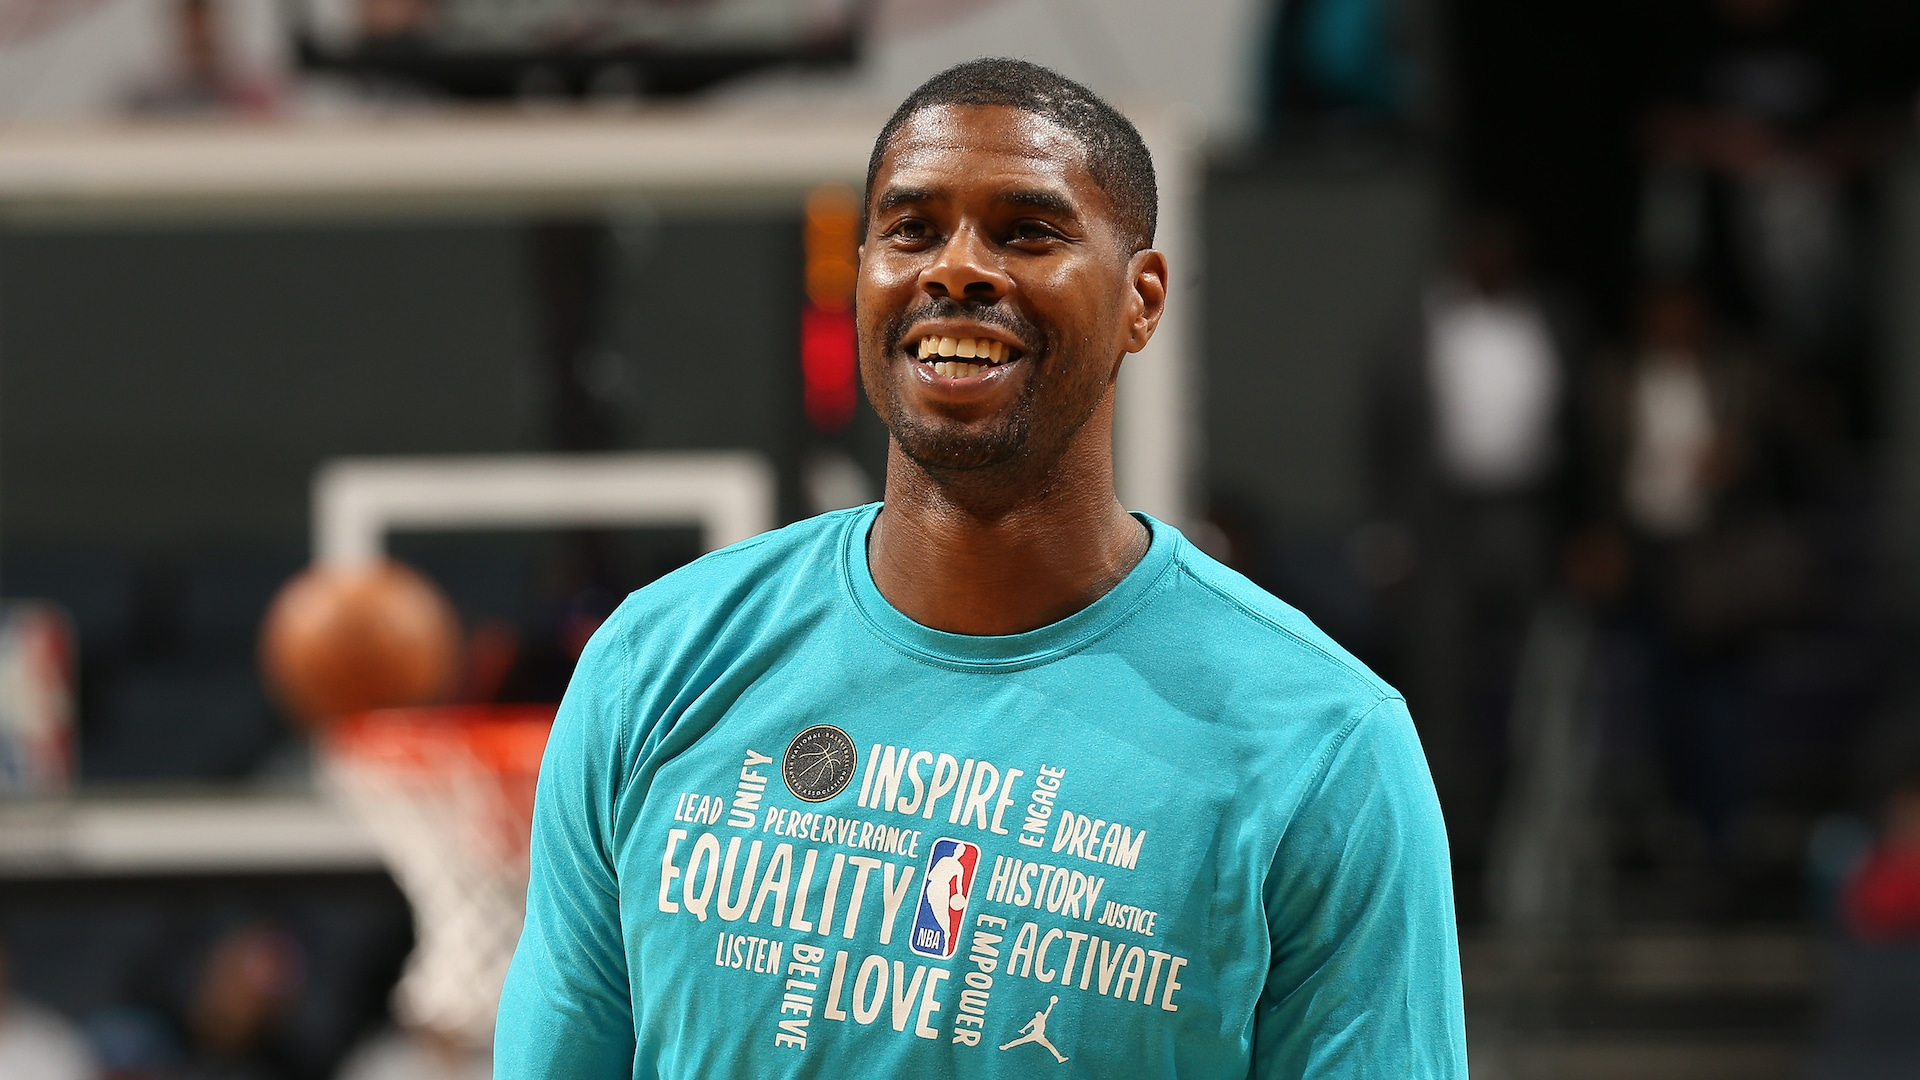 Reports: Marvin Williams completes buyout with Hornets, plans to sign with Bucks